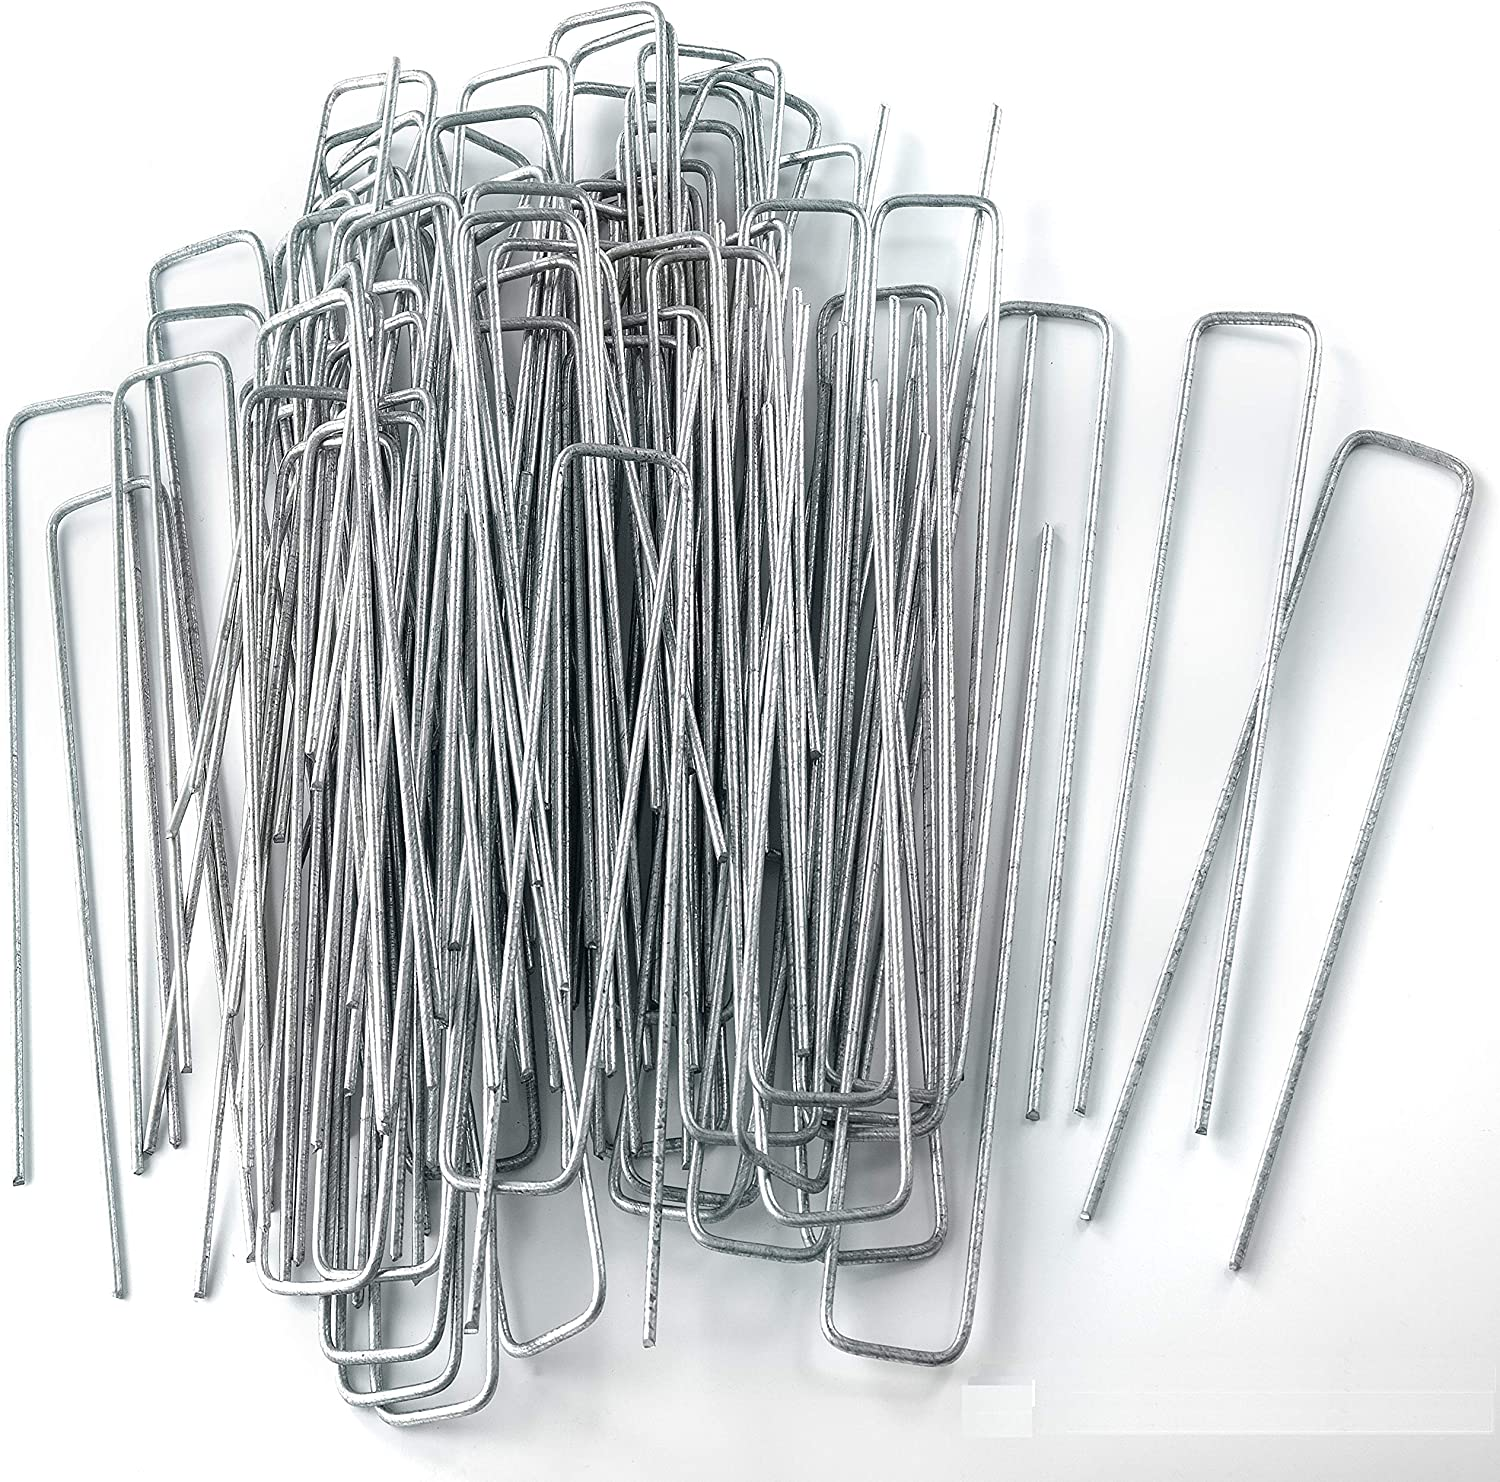 """NHZ 100Pcs 8.7"""" x 1.57"""" Galvanized Garden Staples - Anchor Pins Ground Stakes - U-Shaped Weed Barrier Landscape Fabric Spikes, 100 pcs."""